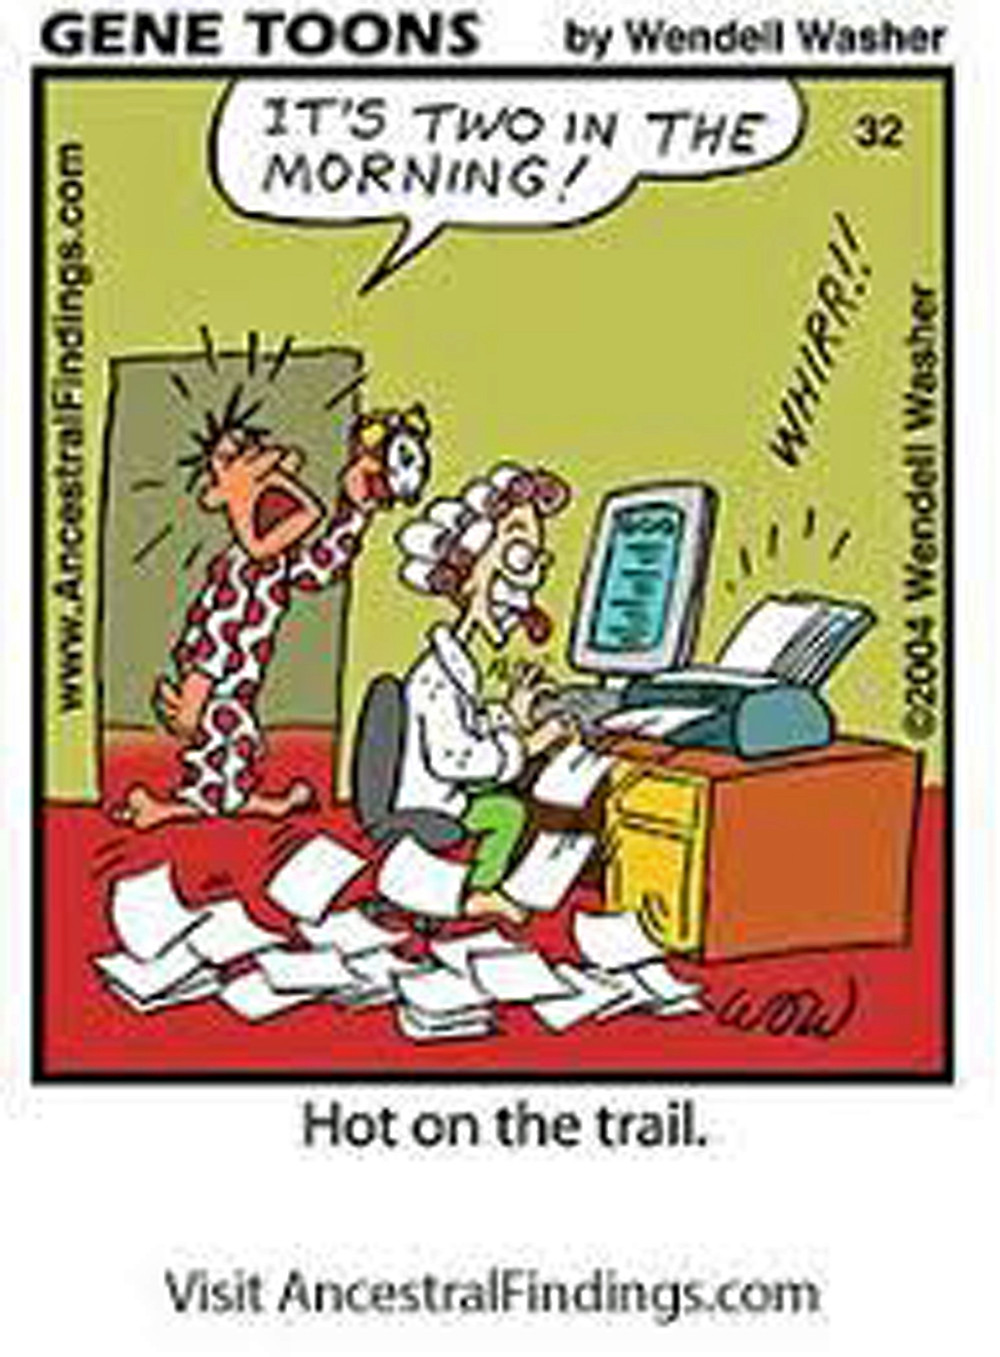 Cartoon about man complaining it's 2 in the morning and his wife is still doing family history on the computer. From Gene Toons and AncestralFindings.com